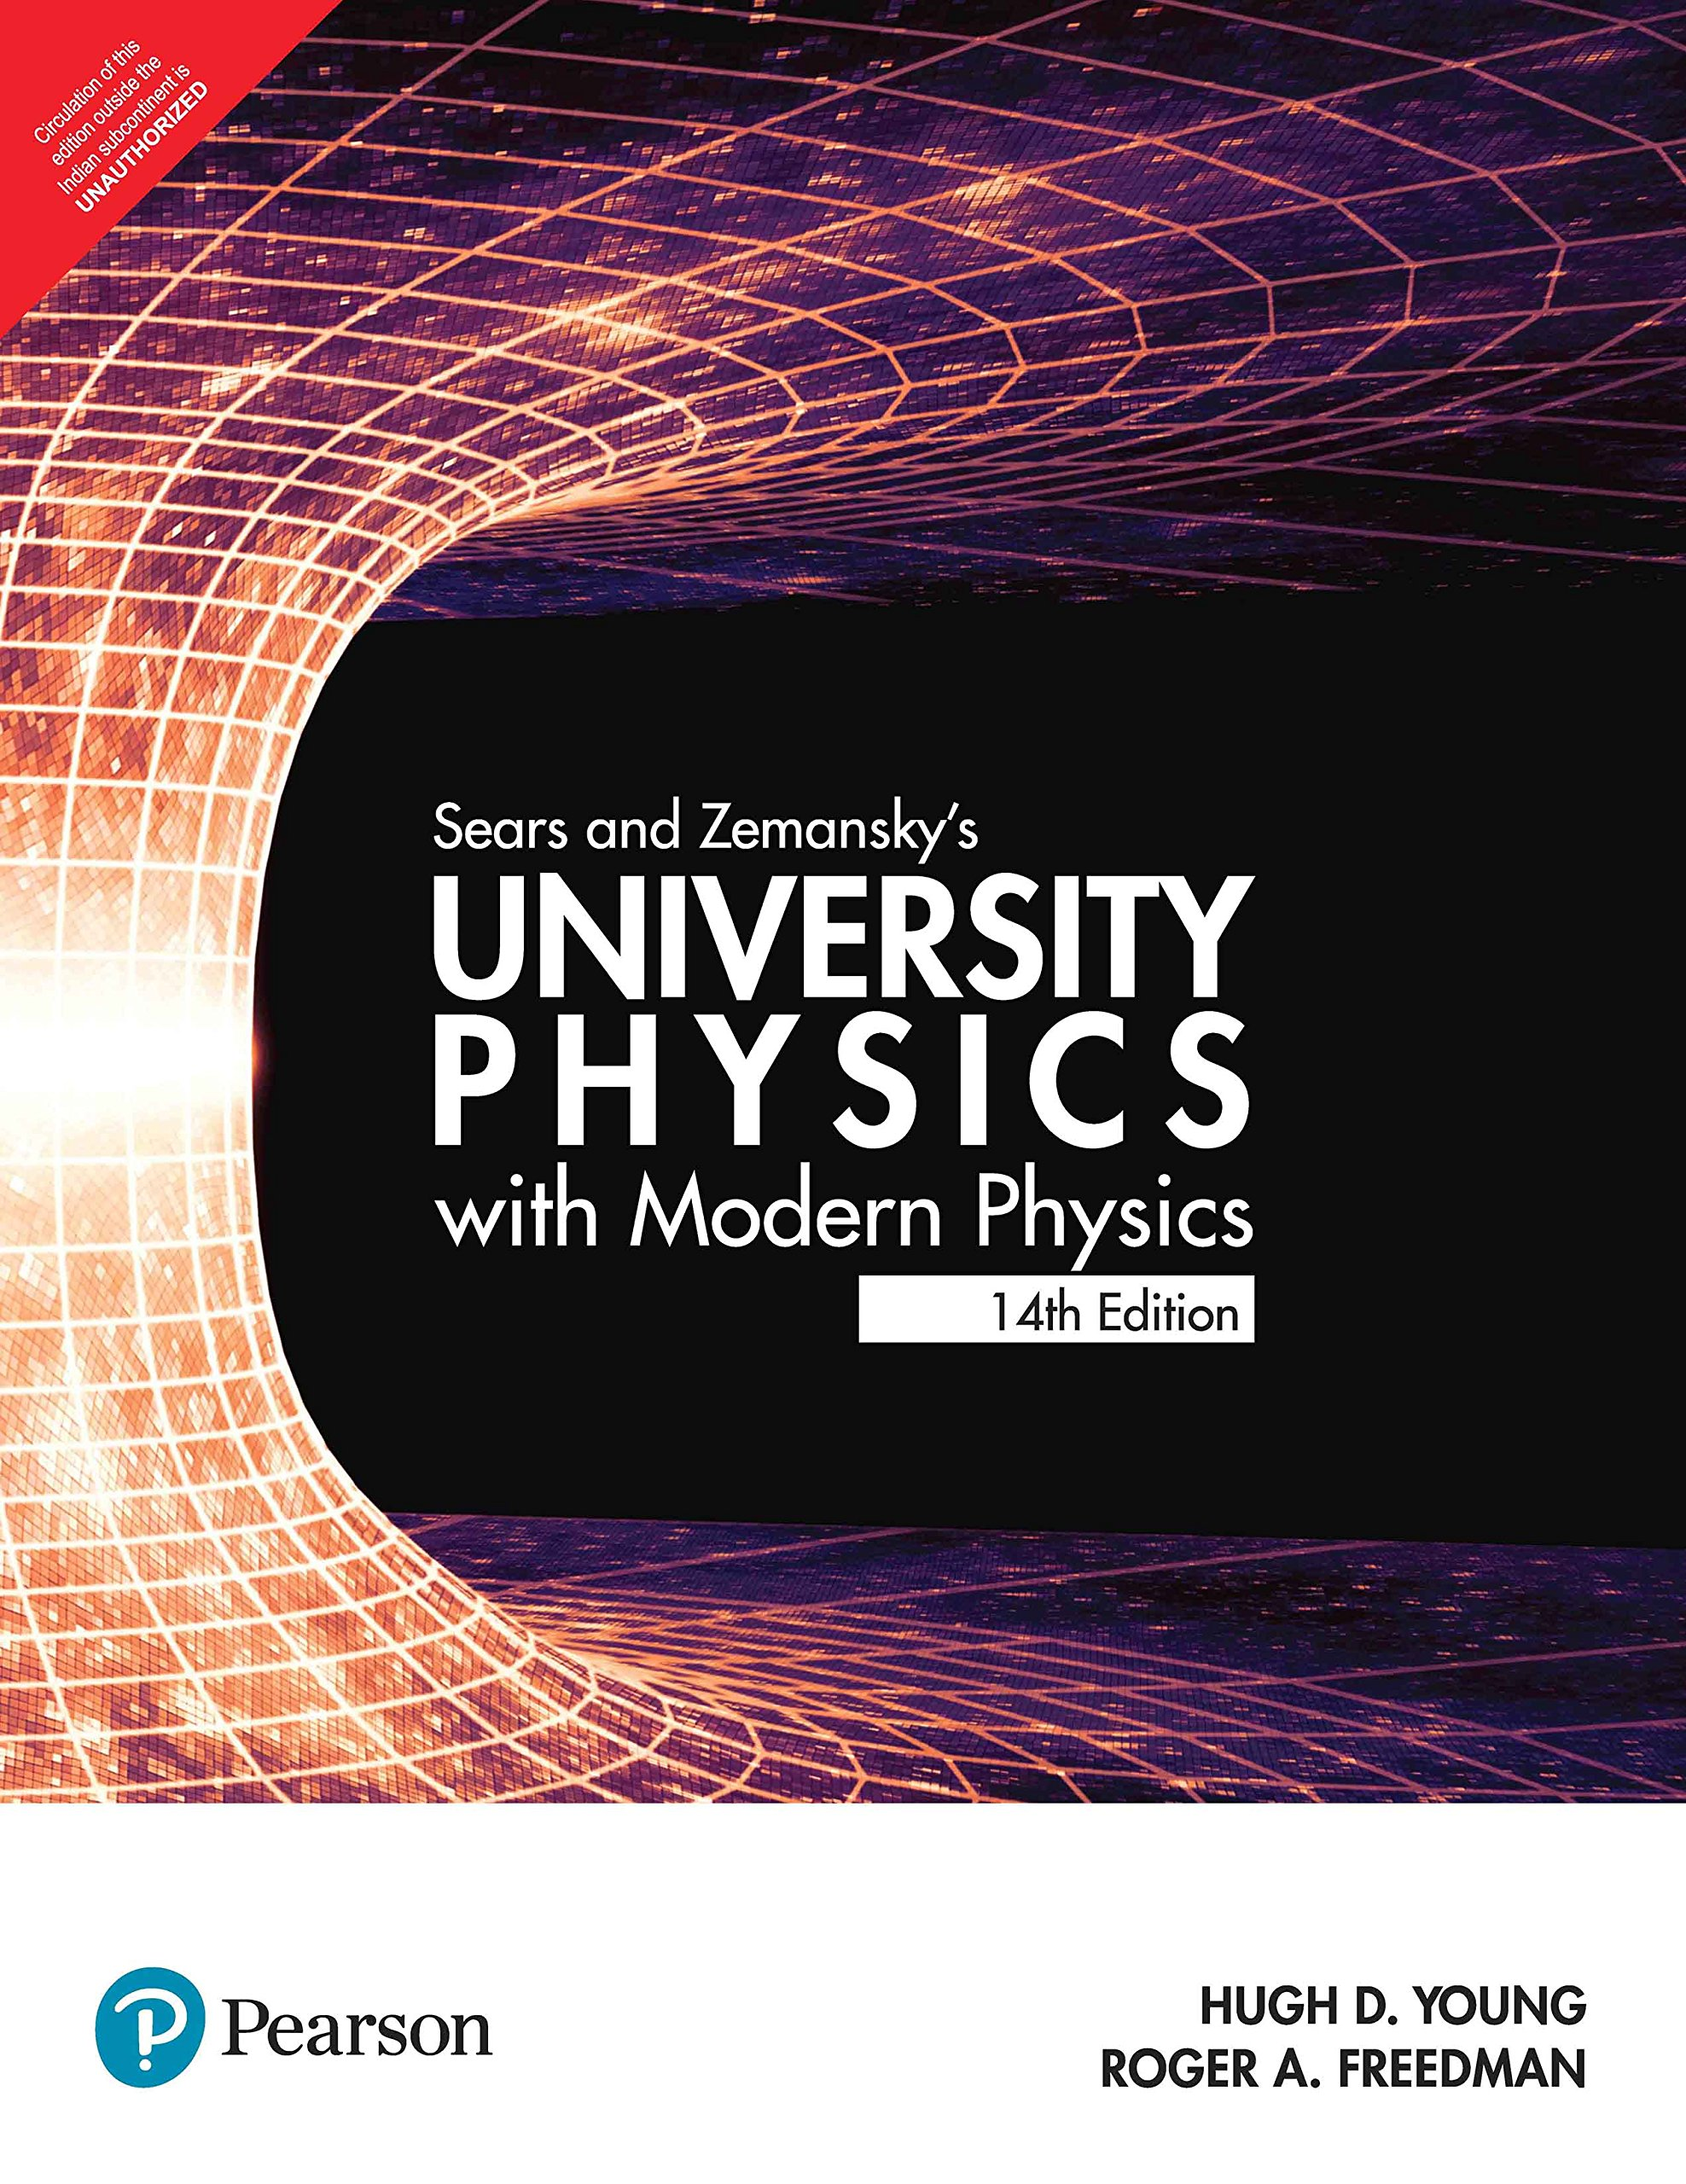 University Physics With Modern Physics 14Th Ed.: Amazon.co.uk: Freedman  Young: 9789332586284: Books